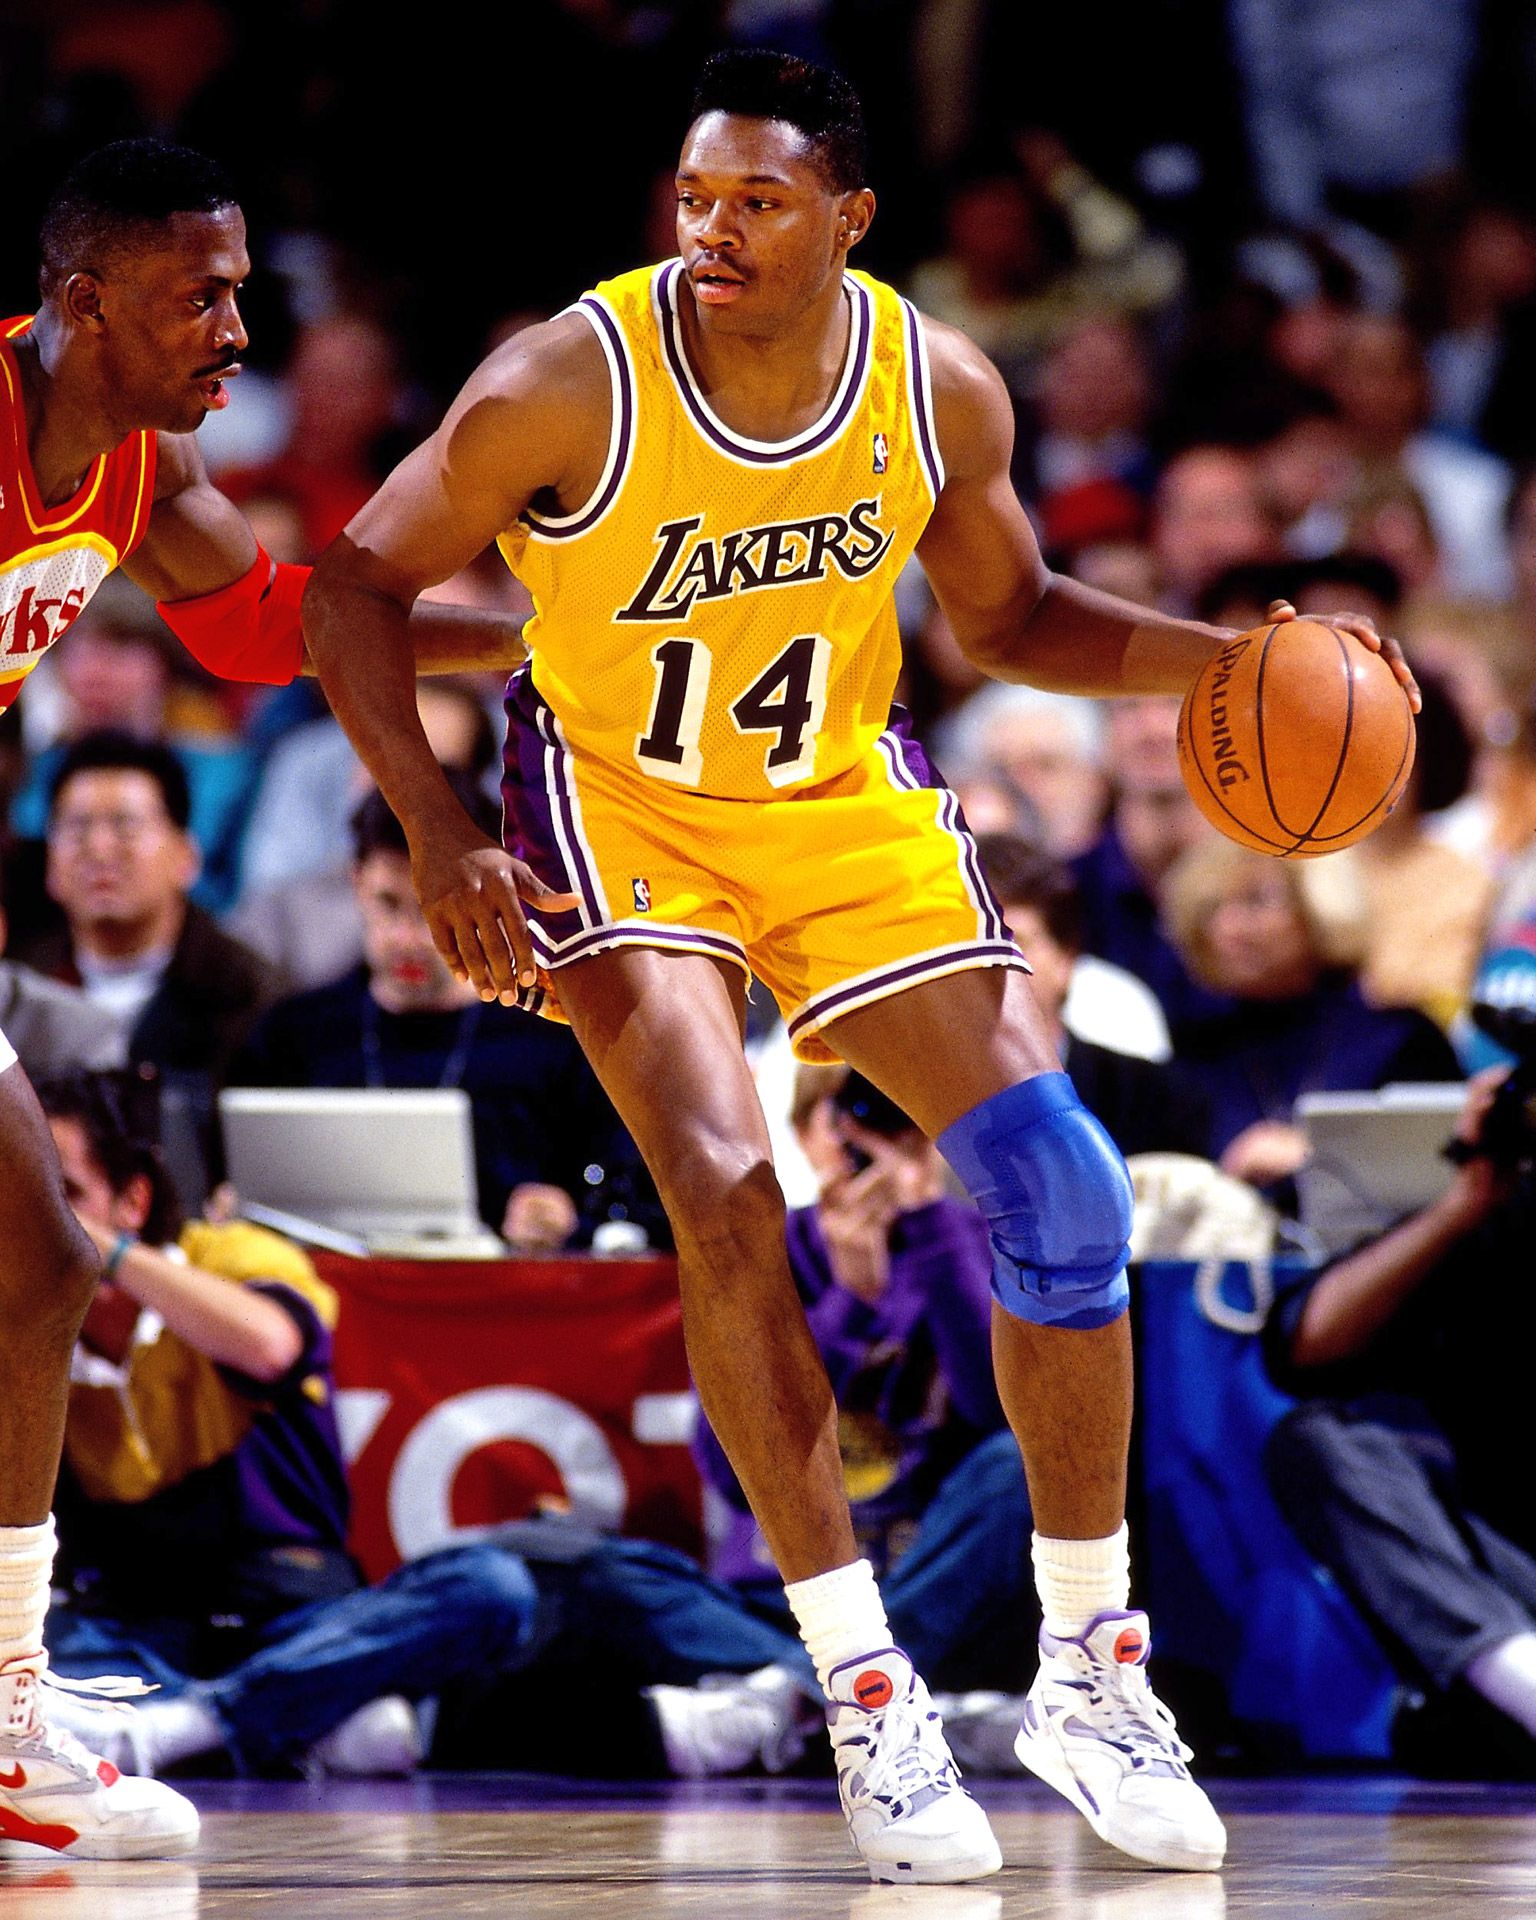 934c83d2e6f Sam Perkins, who played for the Los Angeles Lakers from 1990 to 1993 ...